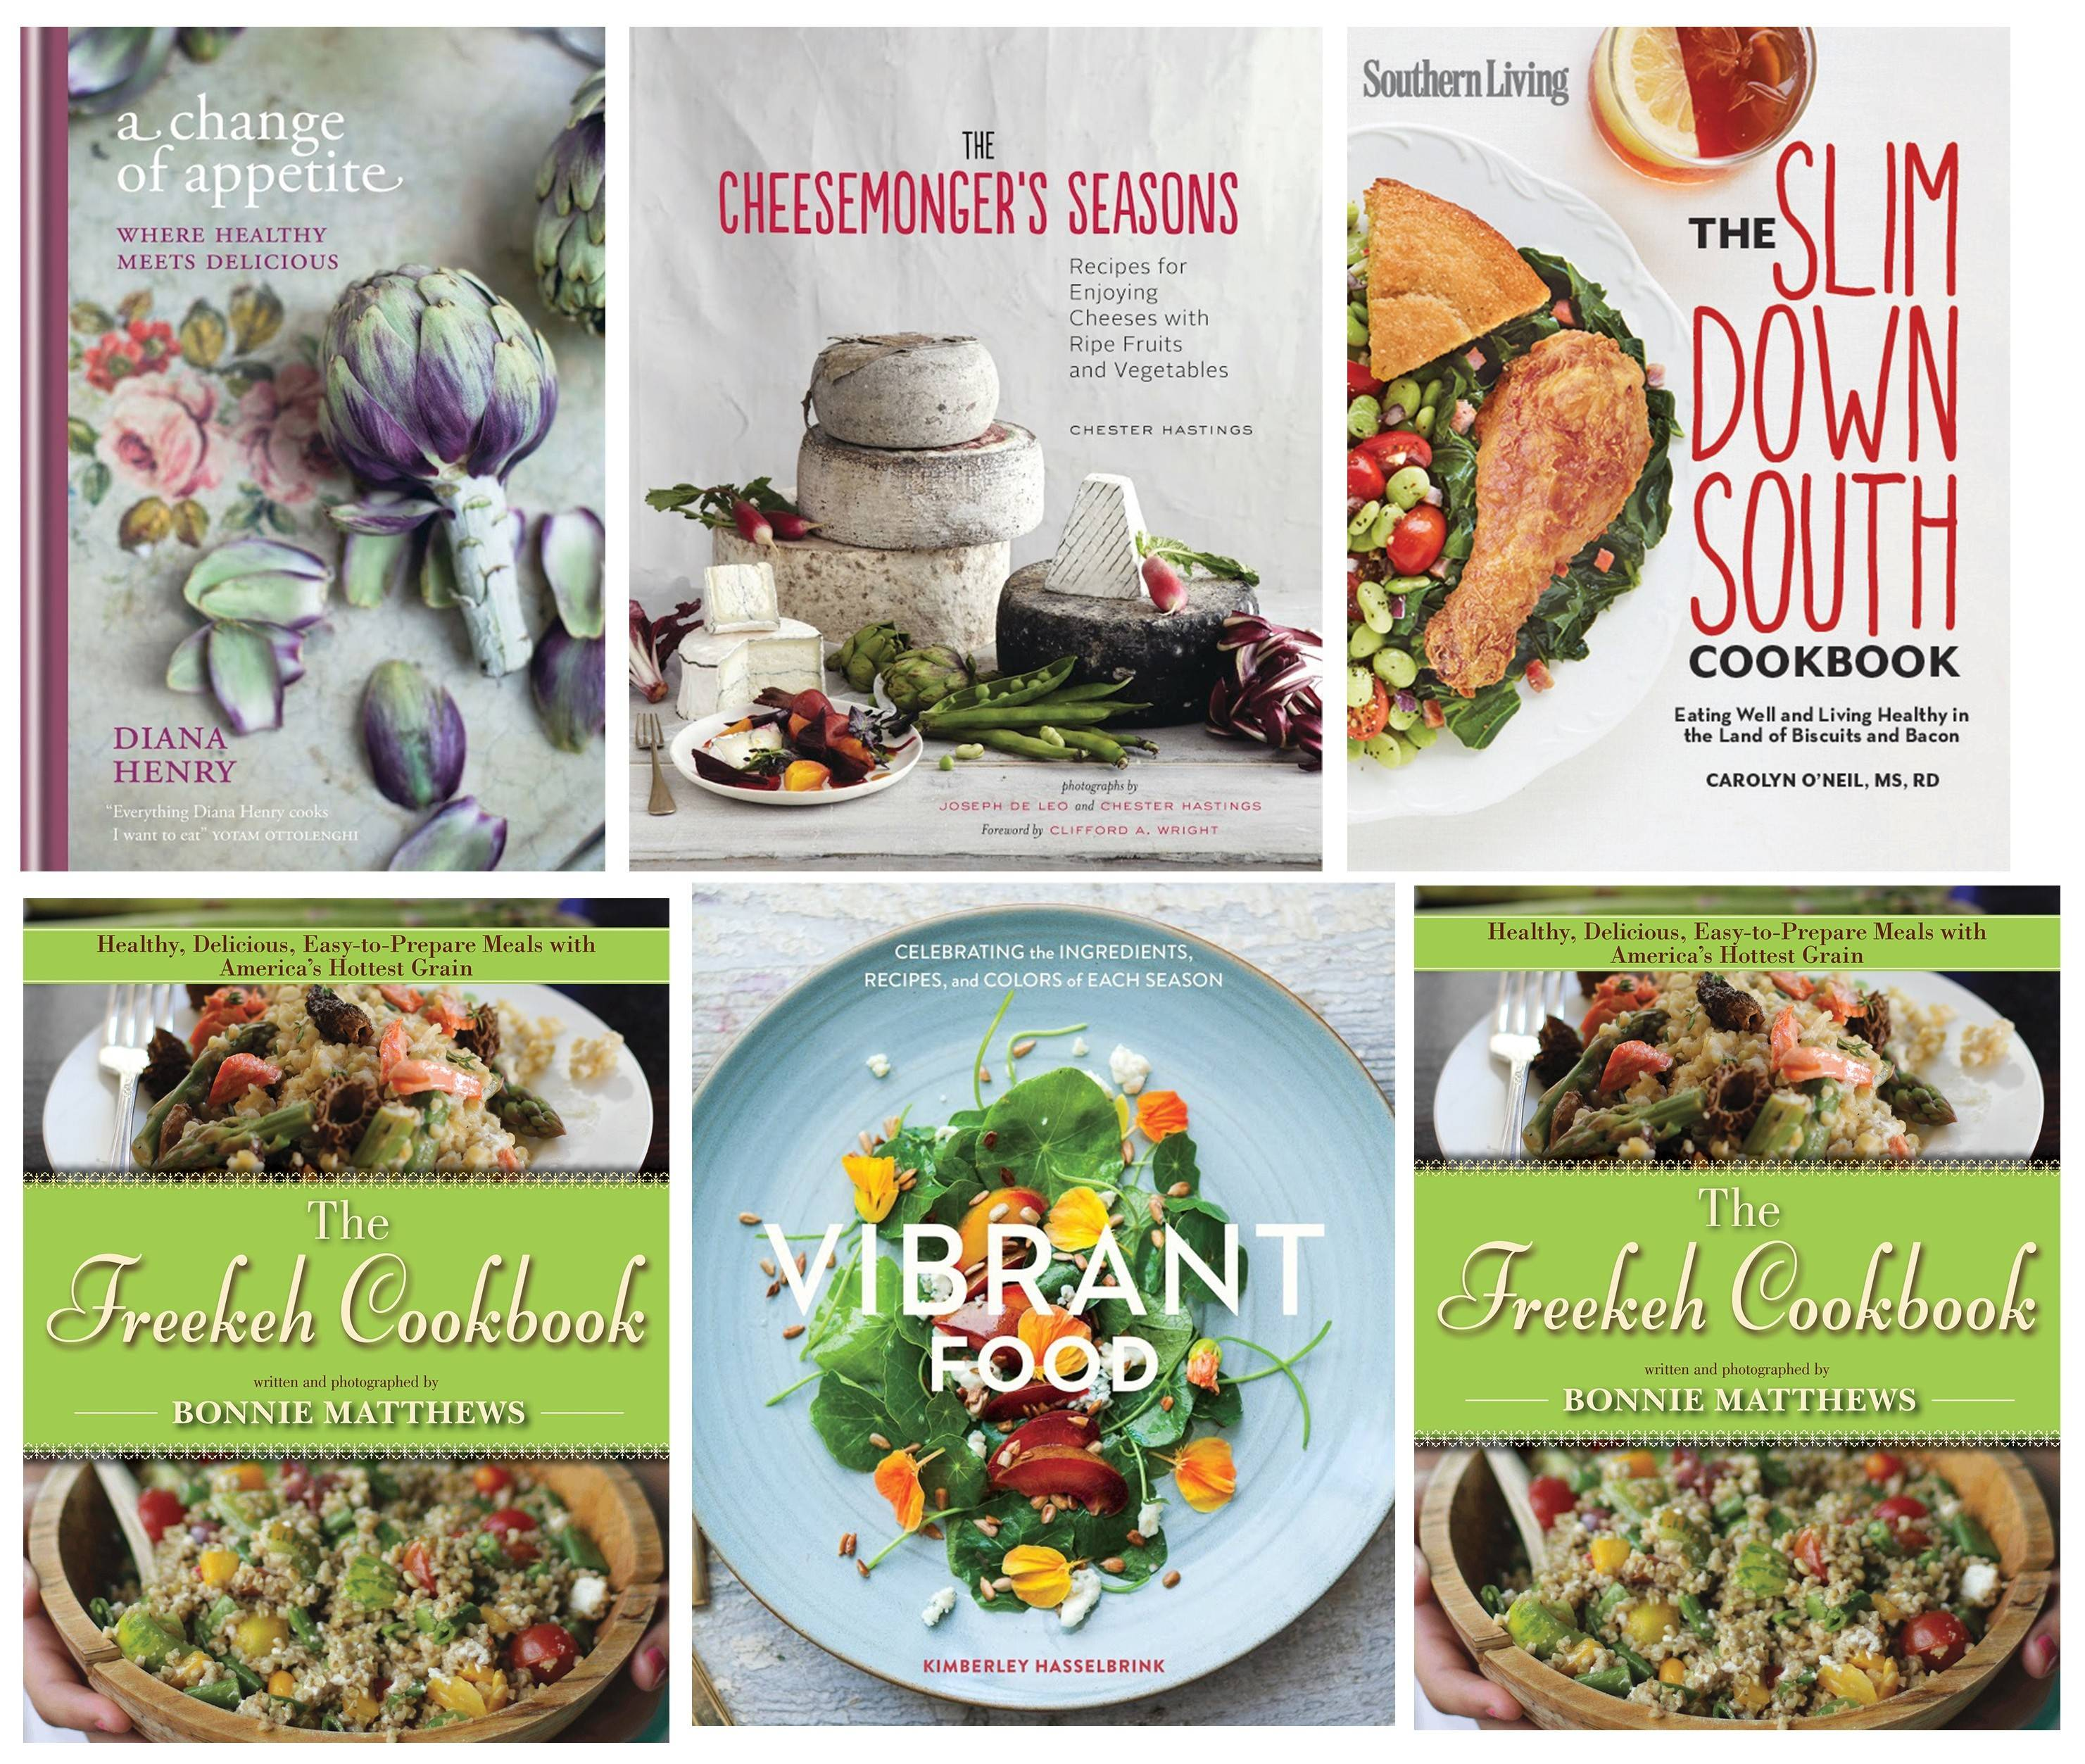 Looking for a fun summer read? Consider any of these cookbooks.